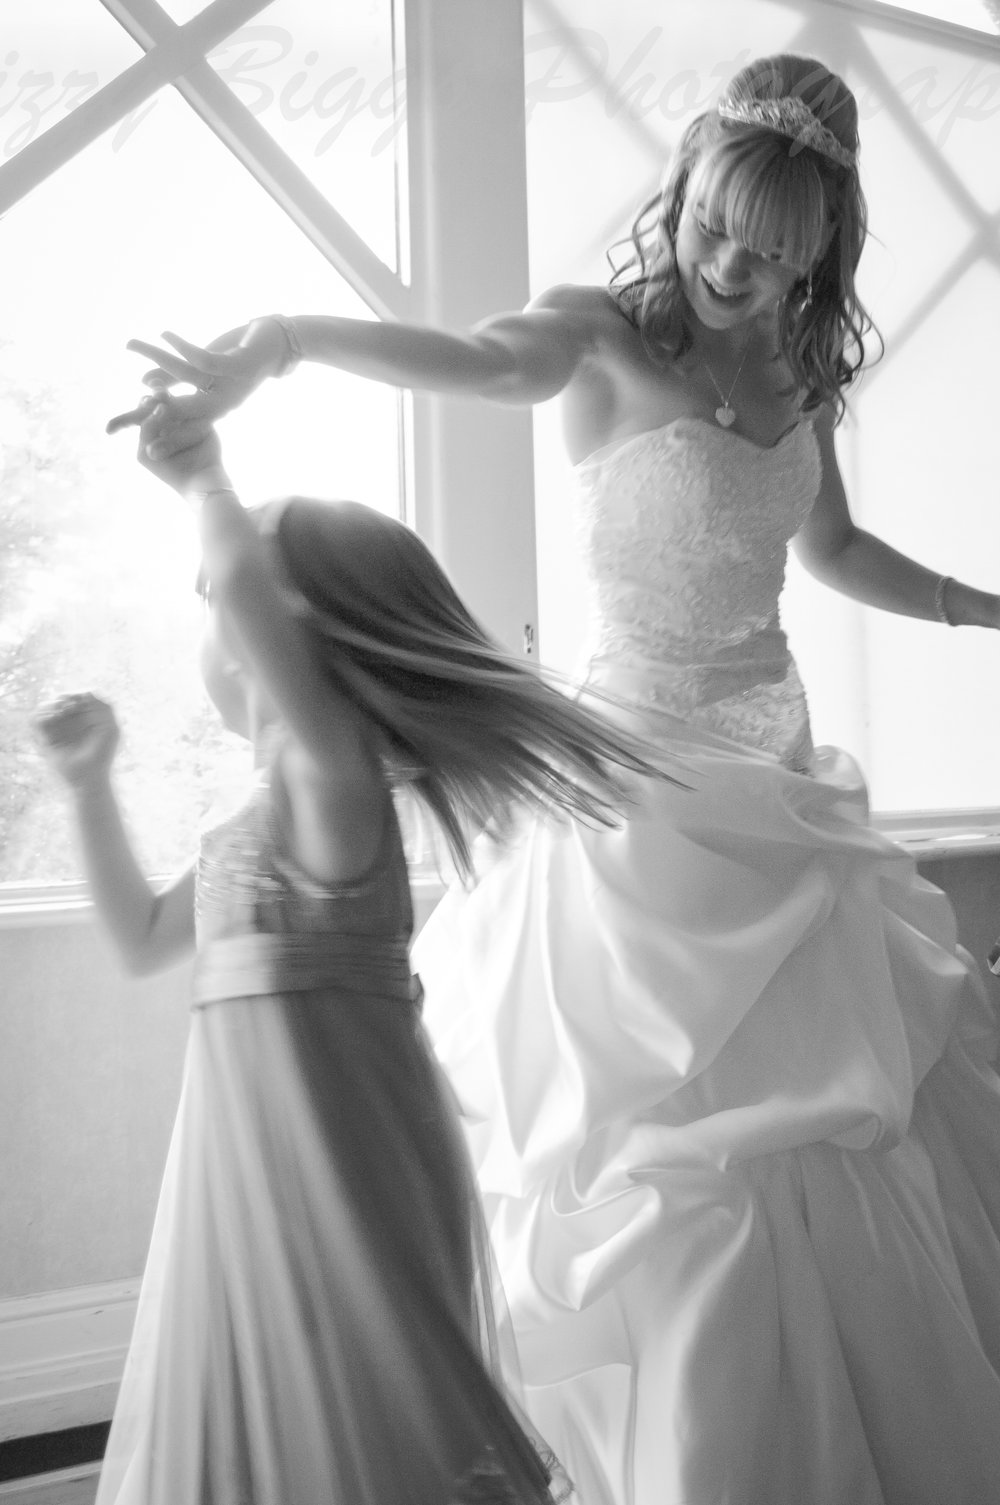 Bride twirling bridesmaid on dance floor backlit in window